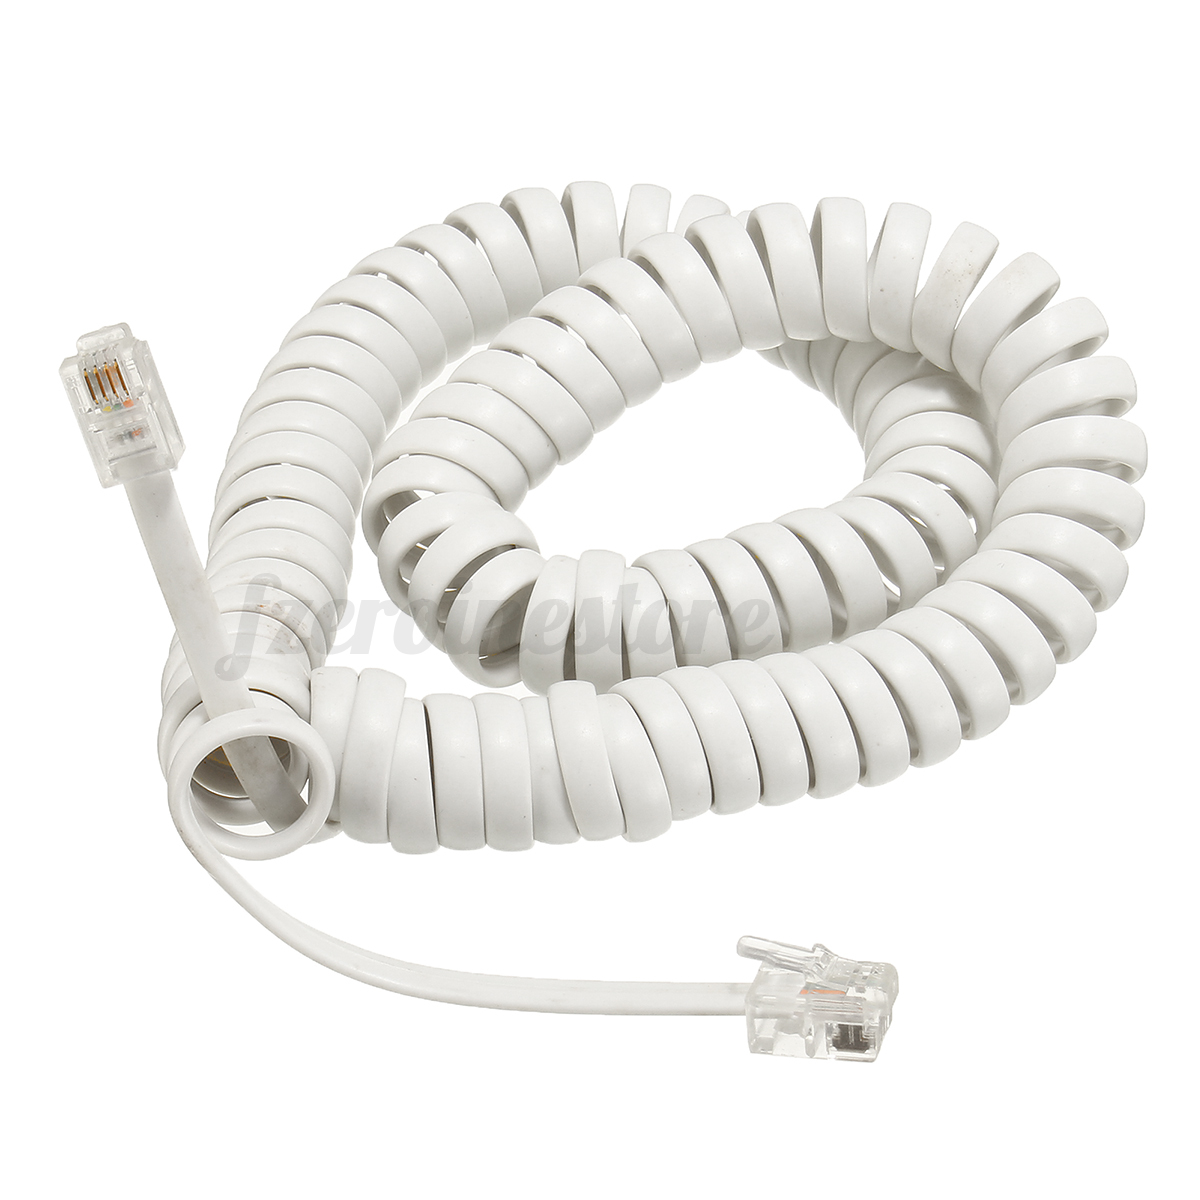 New 3M Telephone Handset Phone Extension Cord Curly Coil ...